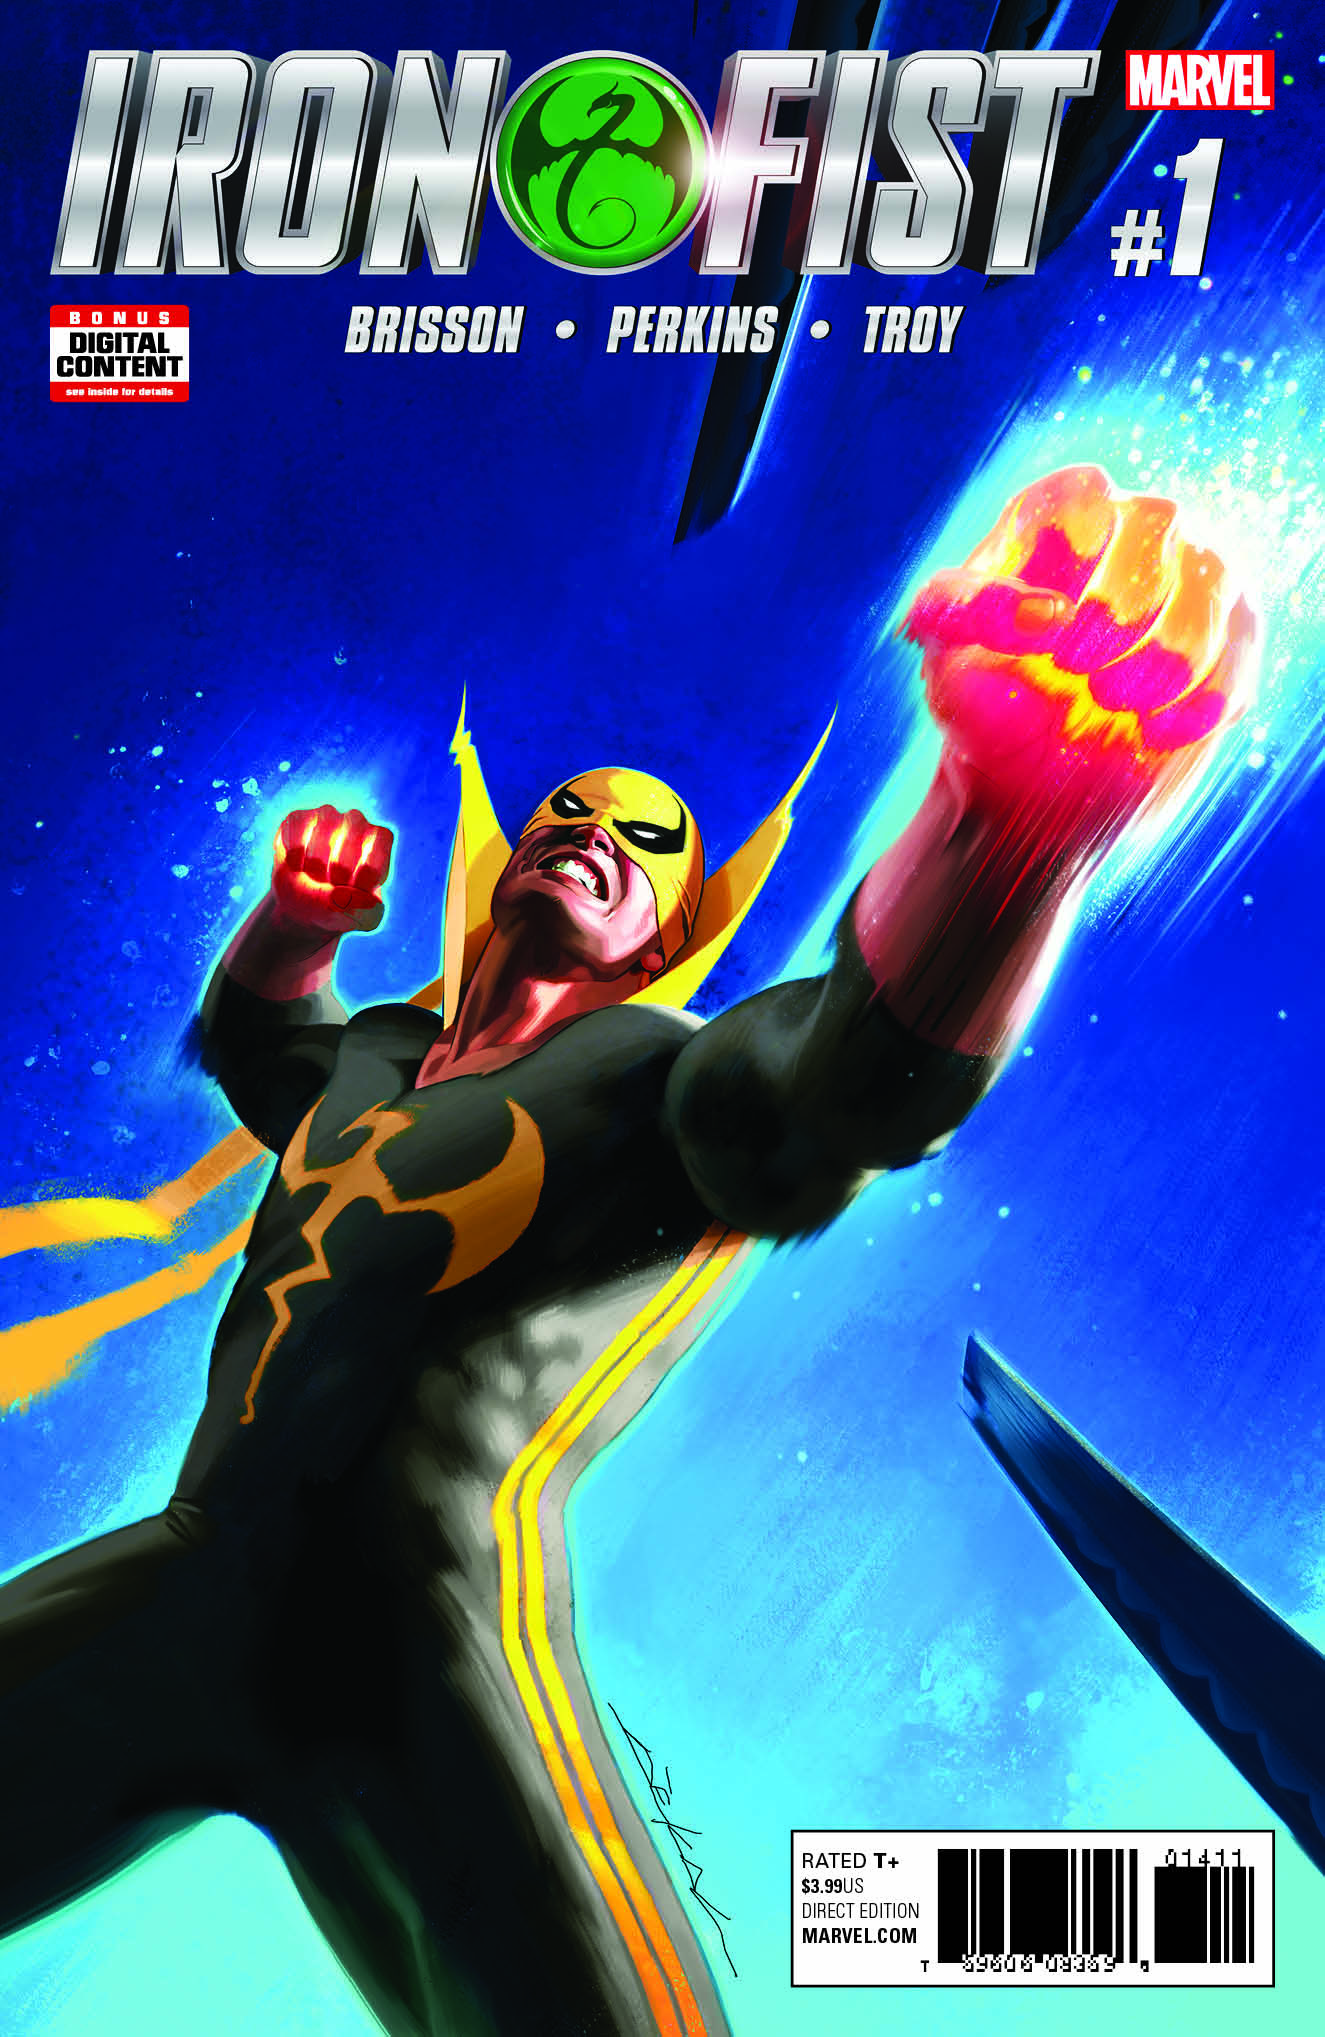 Marvel Preview: Iron Fist #1